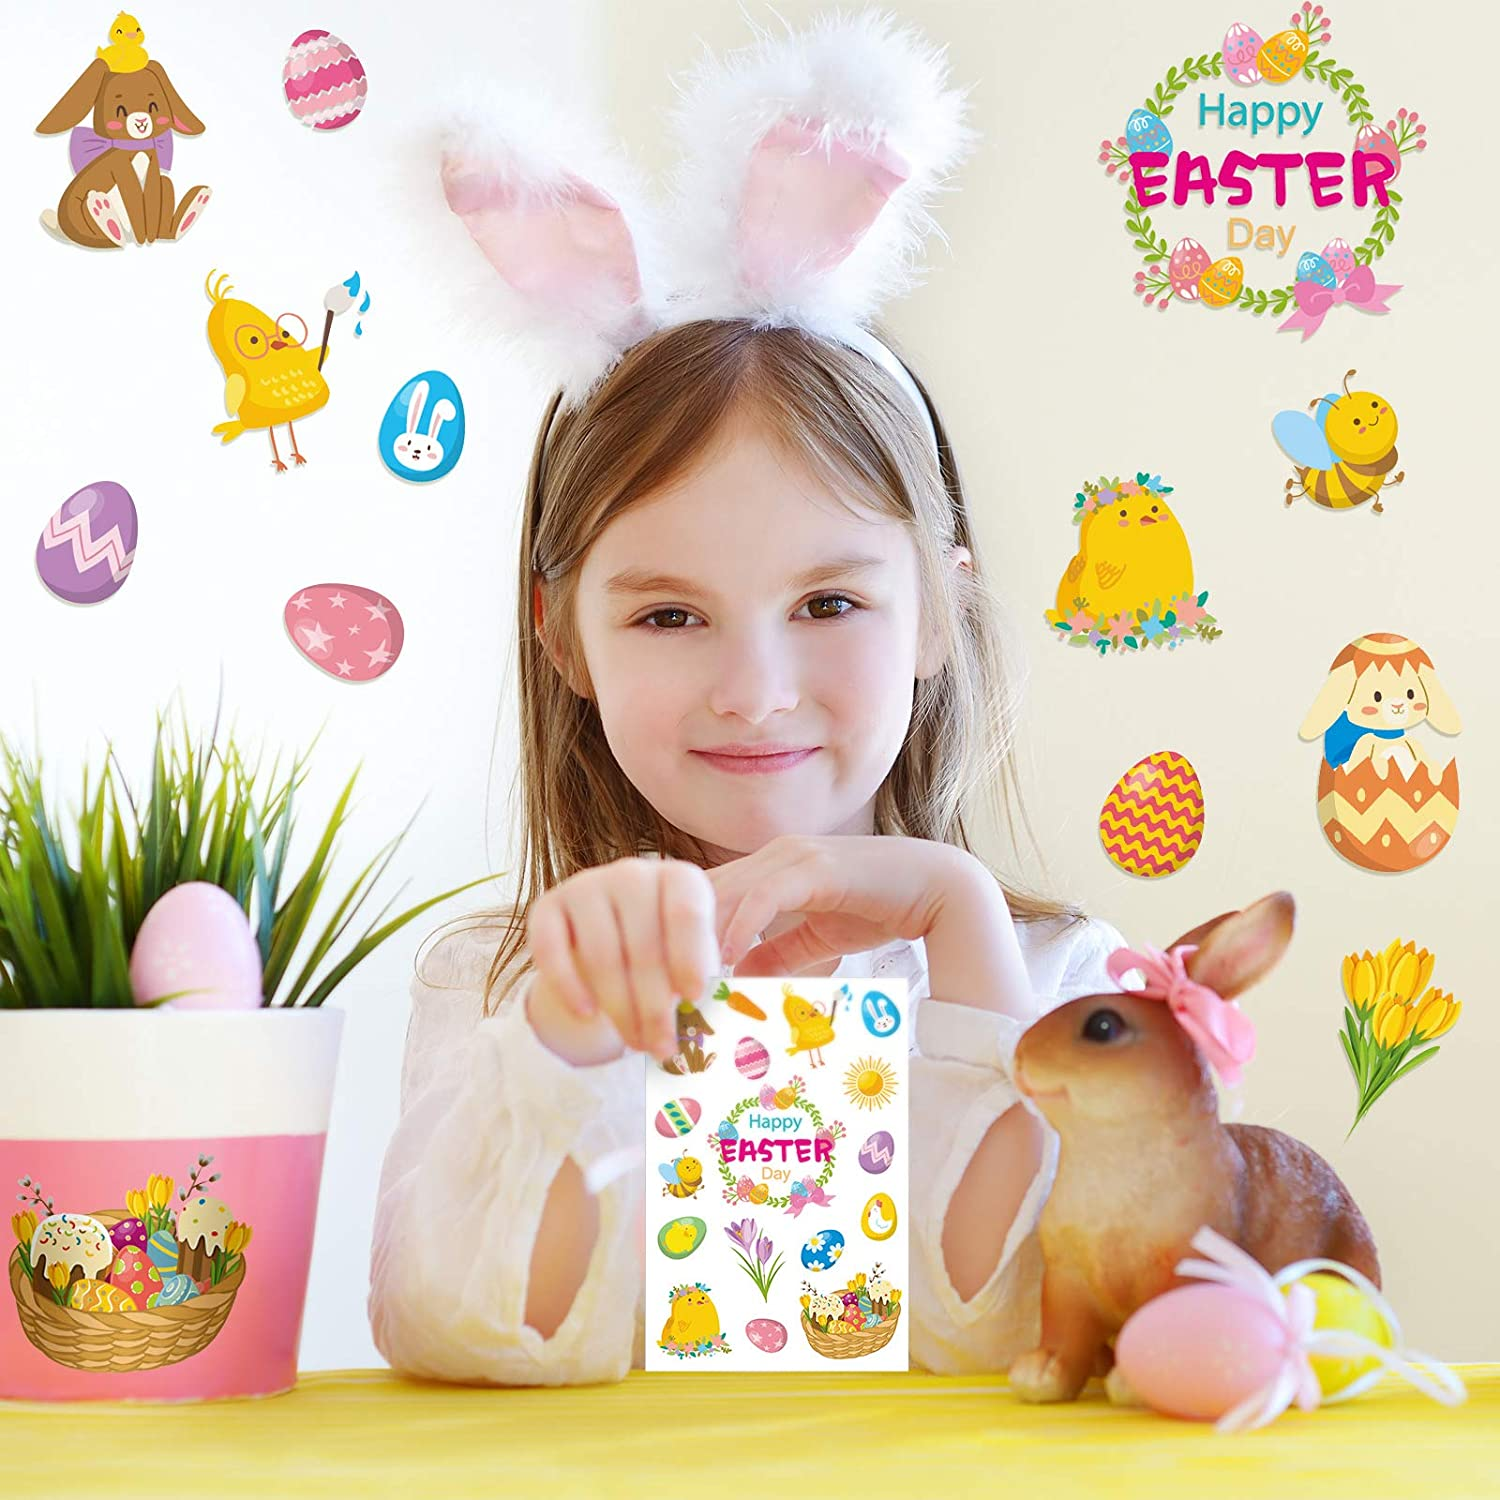 8 Sheets 152 Pieces Easter Stickers Easter Eggs Hunt Bunny Basket Carrot Flowers Decals Cute Holiday Stickers Easter Party Favors for Home Office Kids School Decorations Supplies Stationery